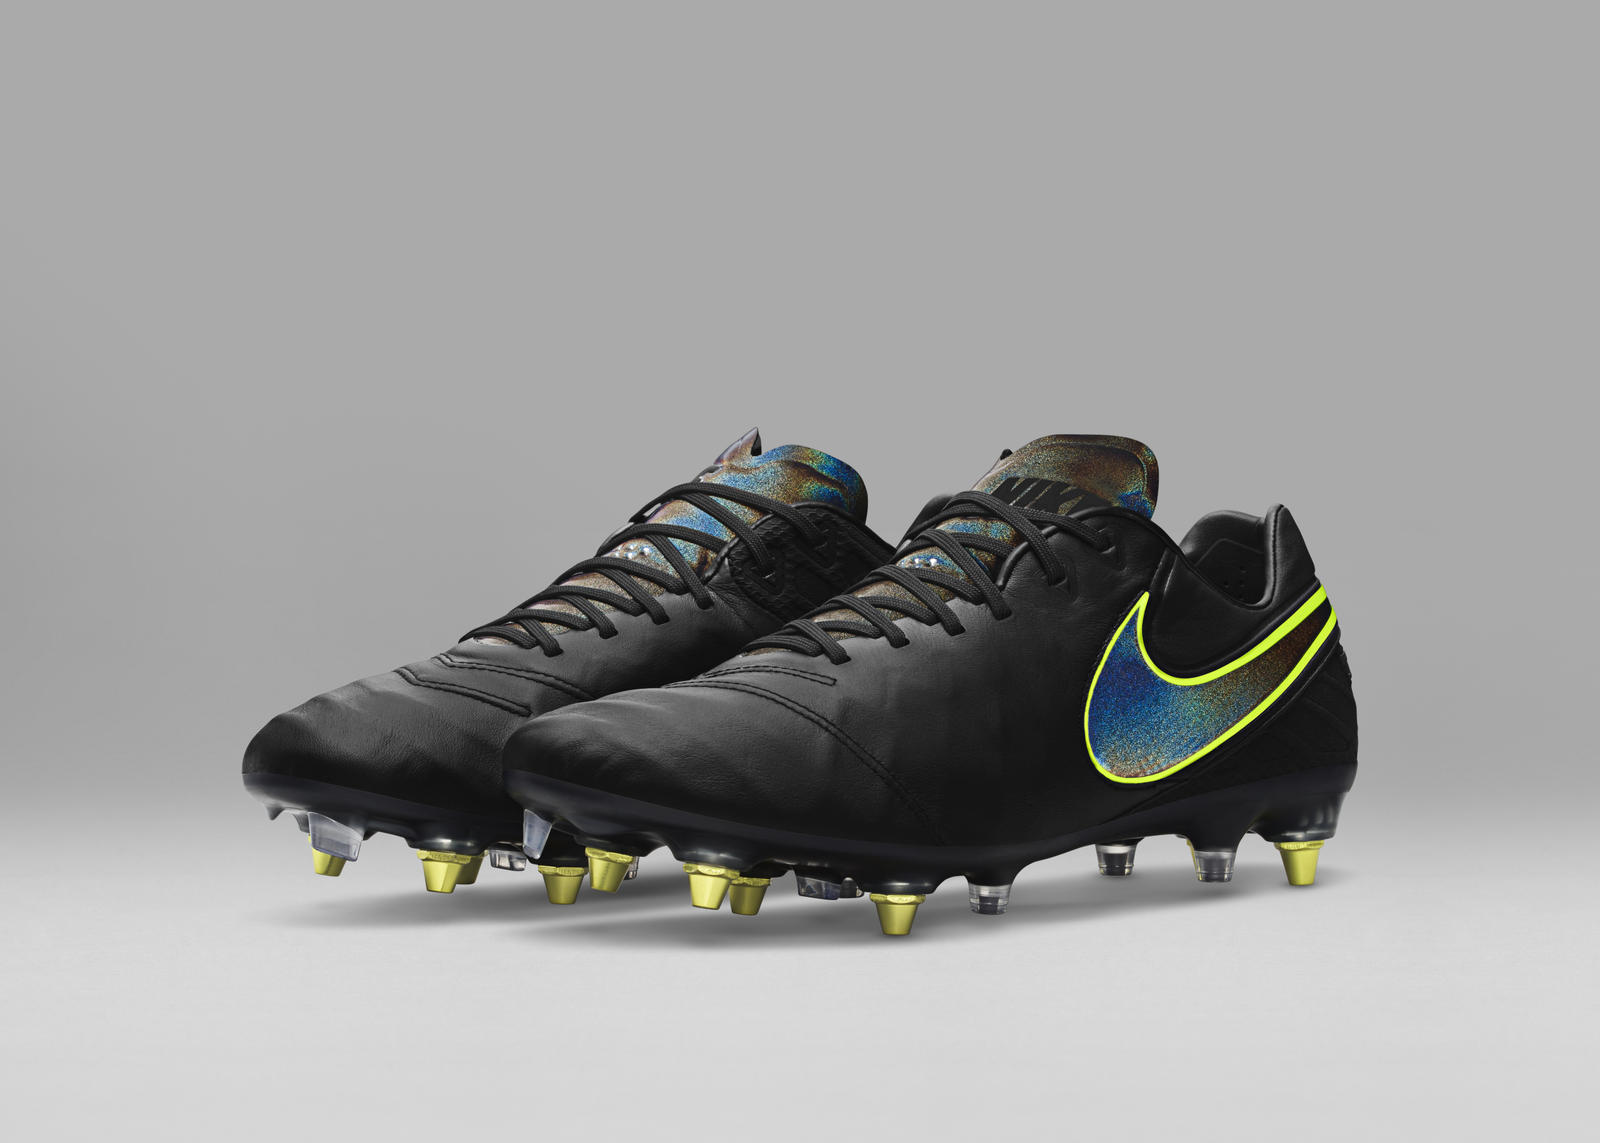 4f7d54b8c8404 Nike Hypervenom Phantom Nike Anti-Clog Traction. Tiempo Legend E